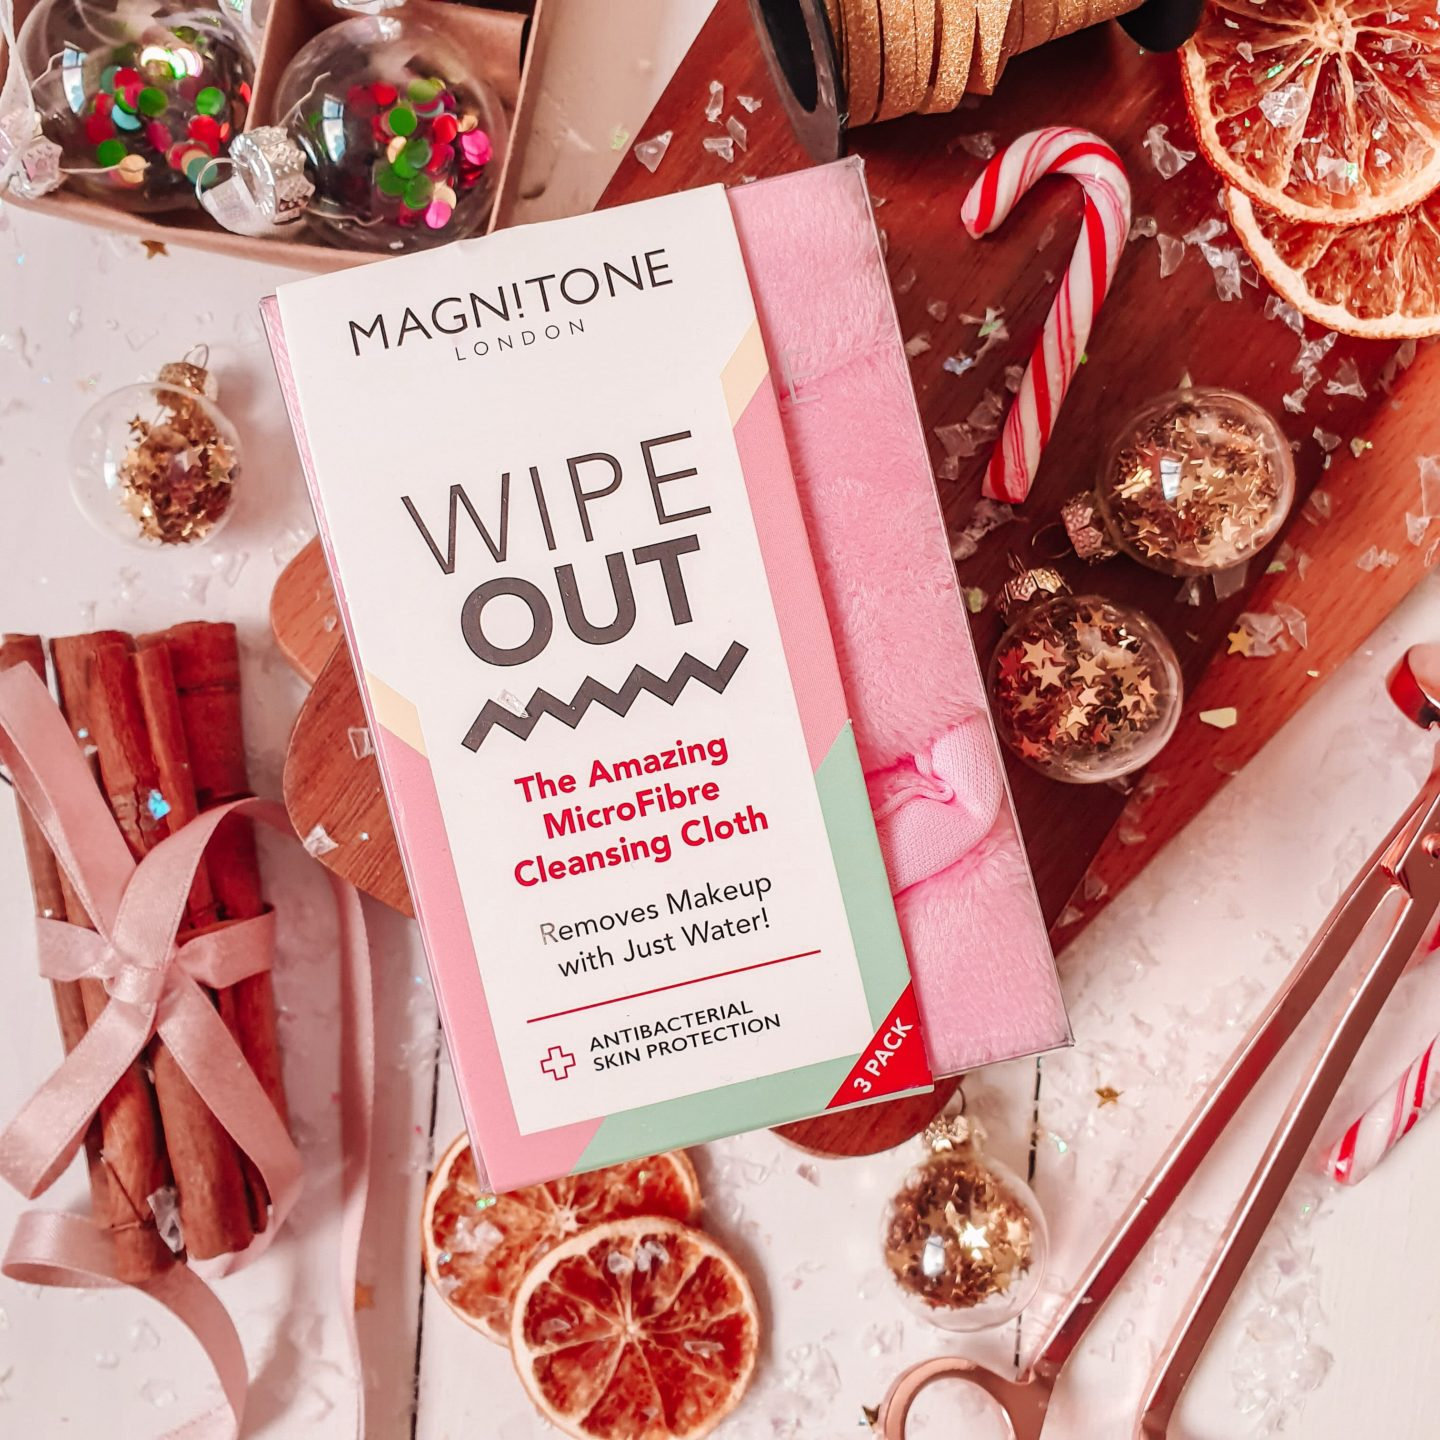 Magnitone Wipe Out Makeup Remover Cloths